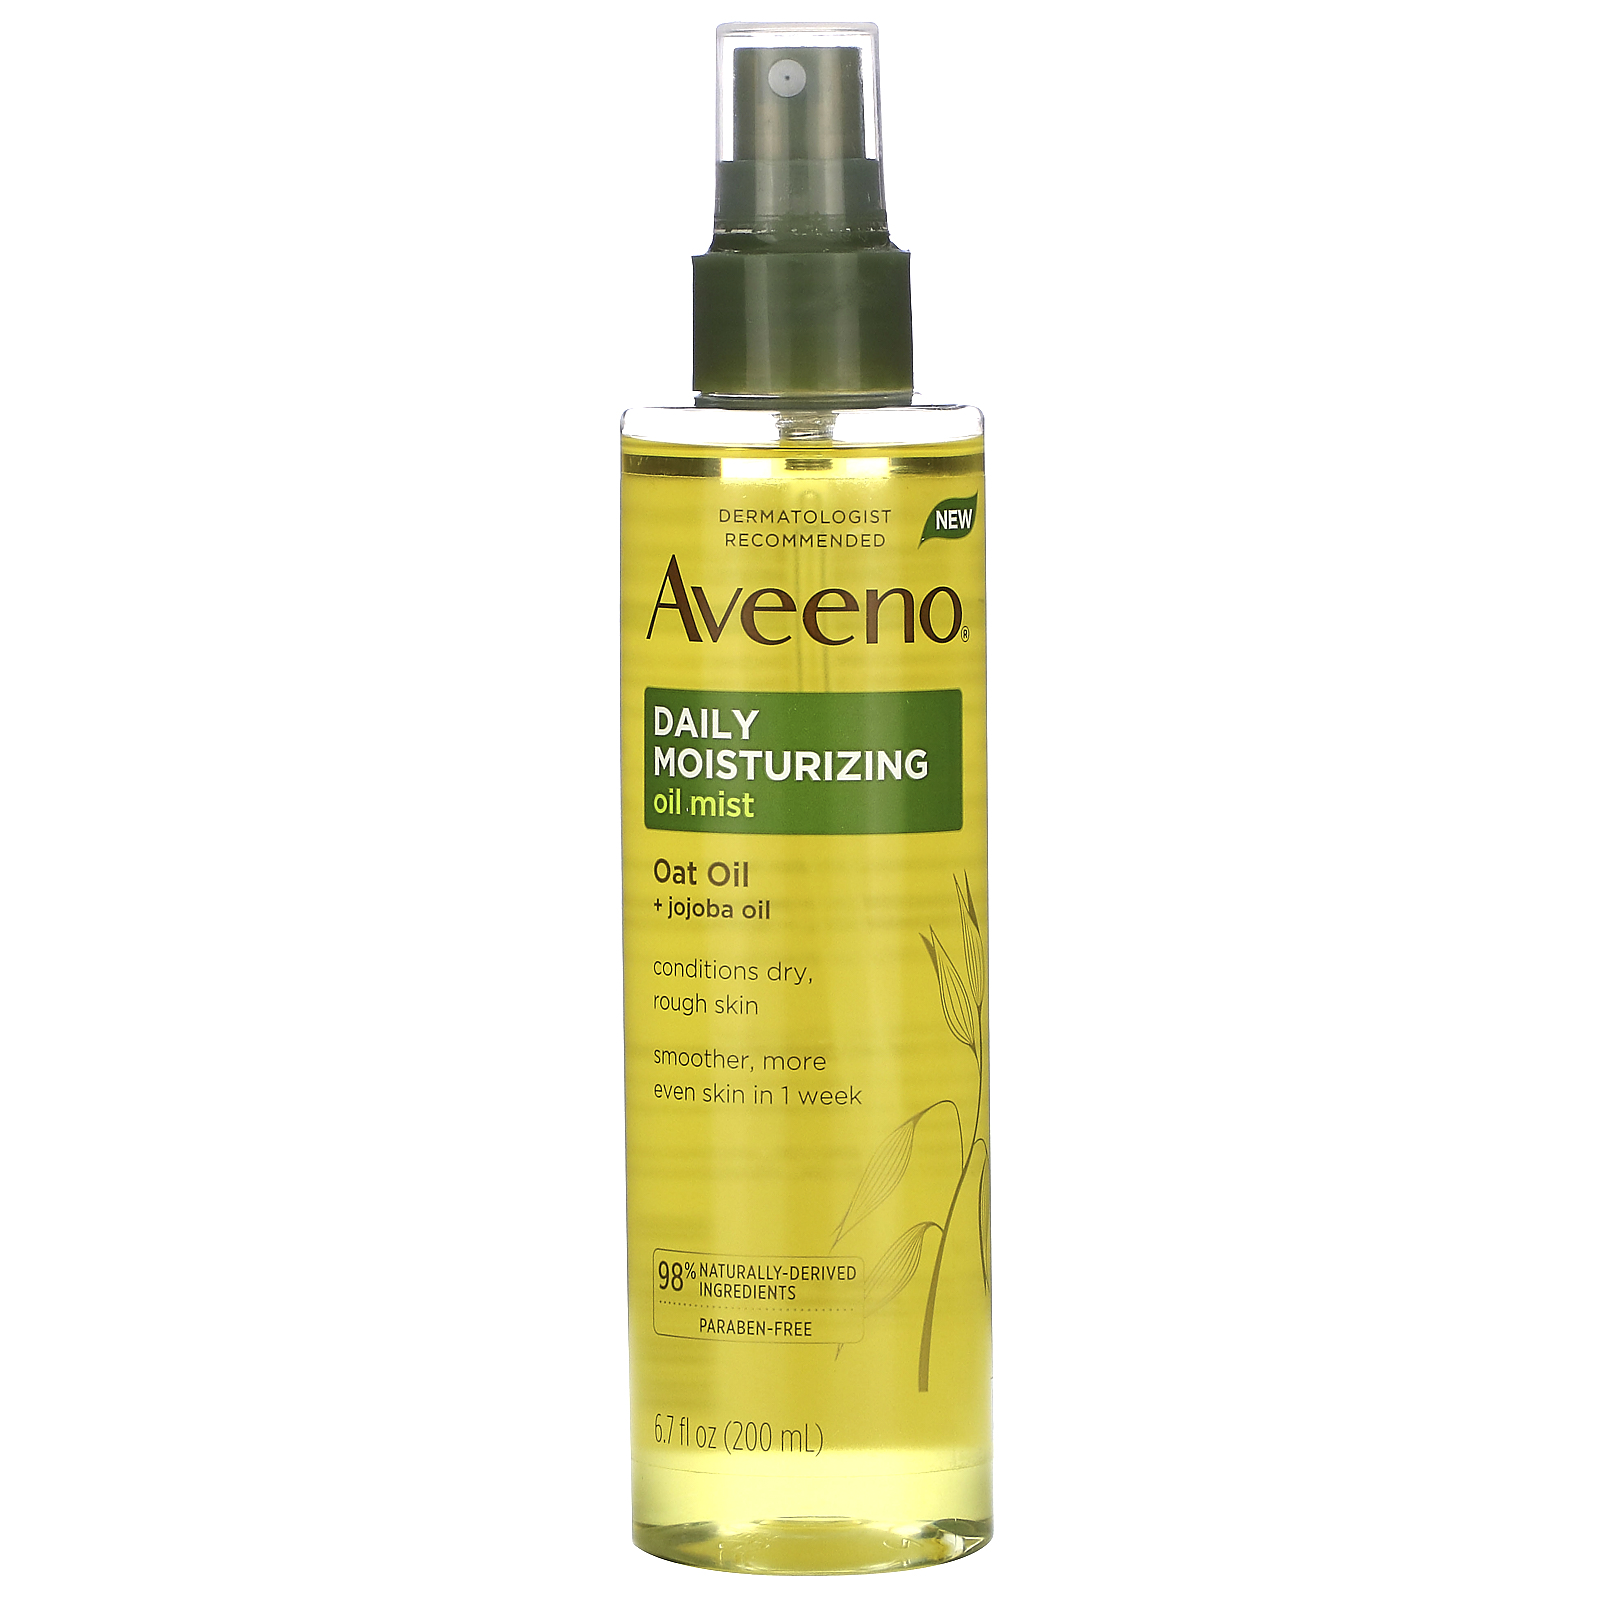 Aveeno, Daily Moisturizing Oil Mist, Oat Oil + Jojoba Oil, 6.7 fl oz (200 ml)